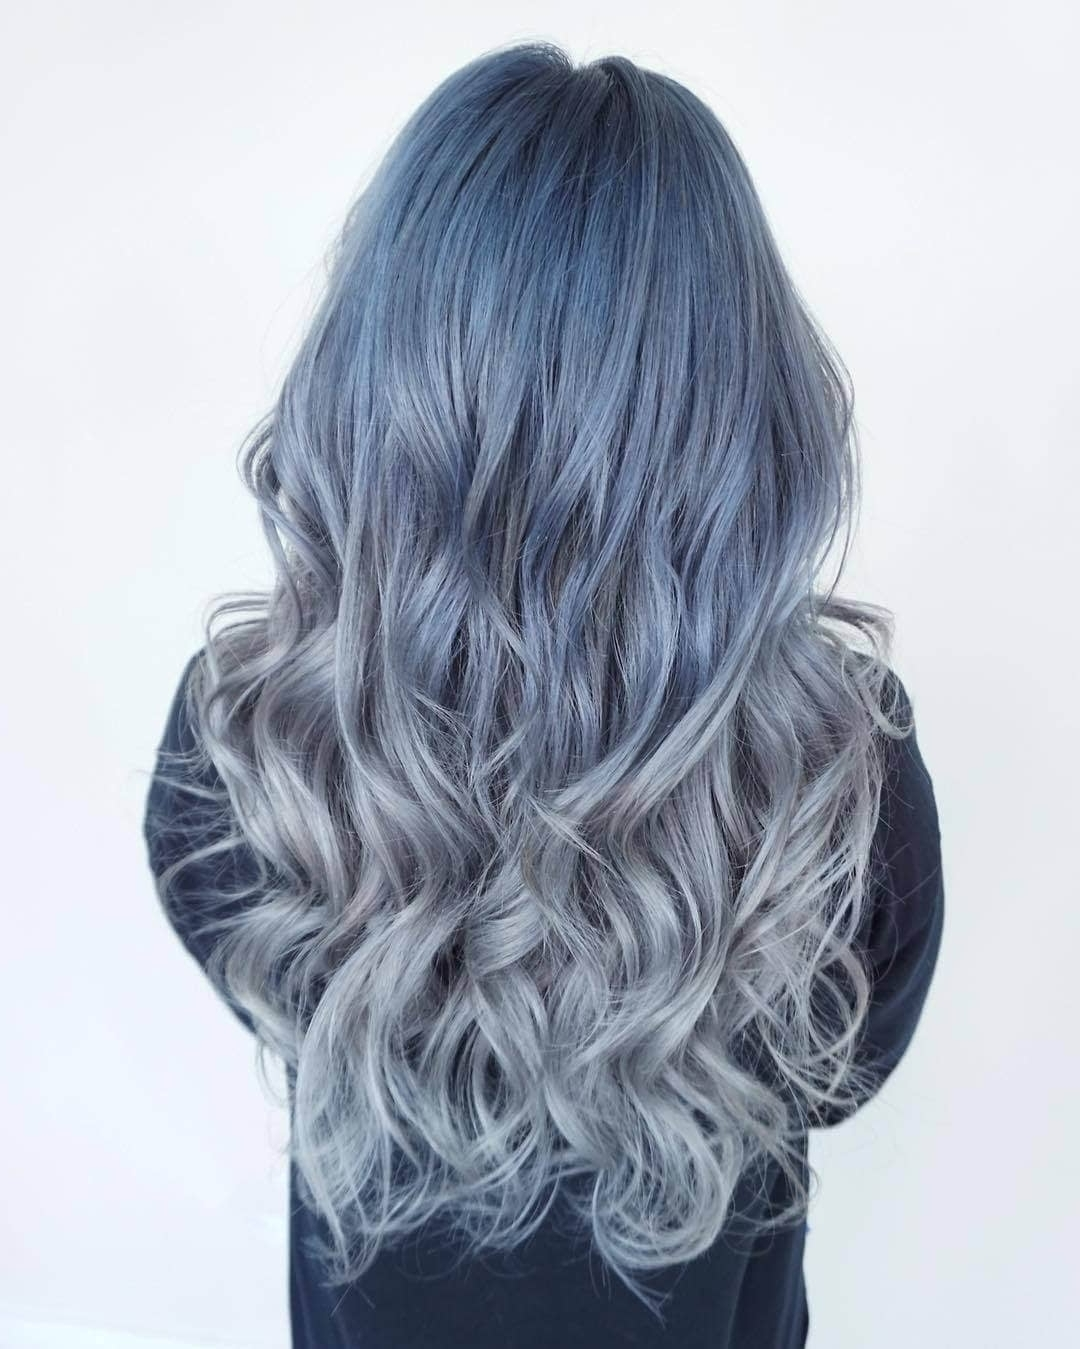 Well Liked Grayscale Ombre Blonde Hairstyles For 50 Fun Blue Hair Ideas To Become More Adventurous In (View 19 of 20)